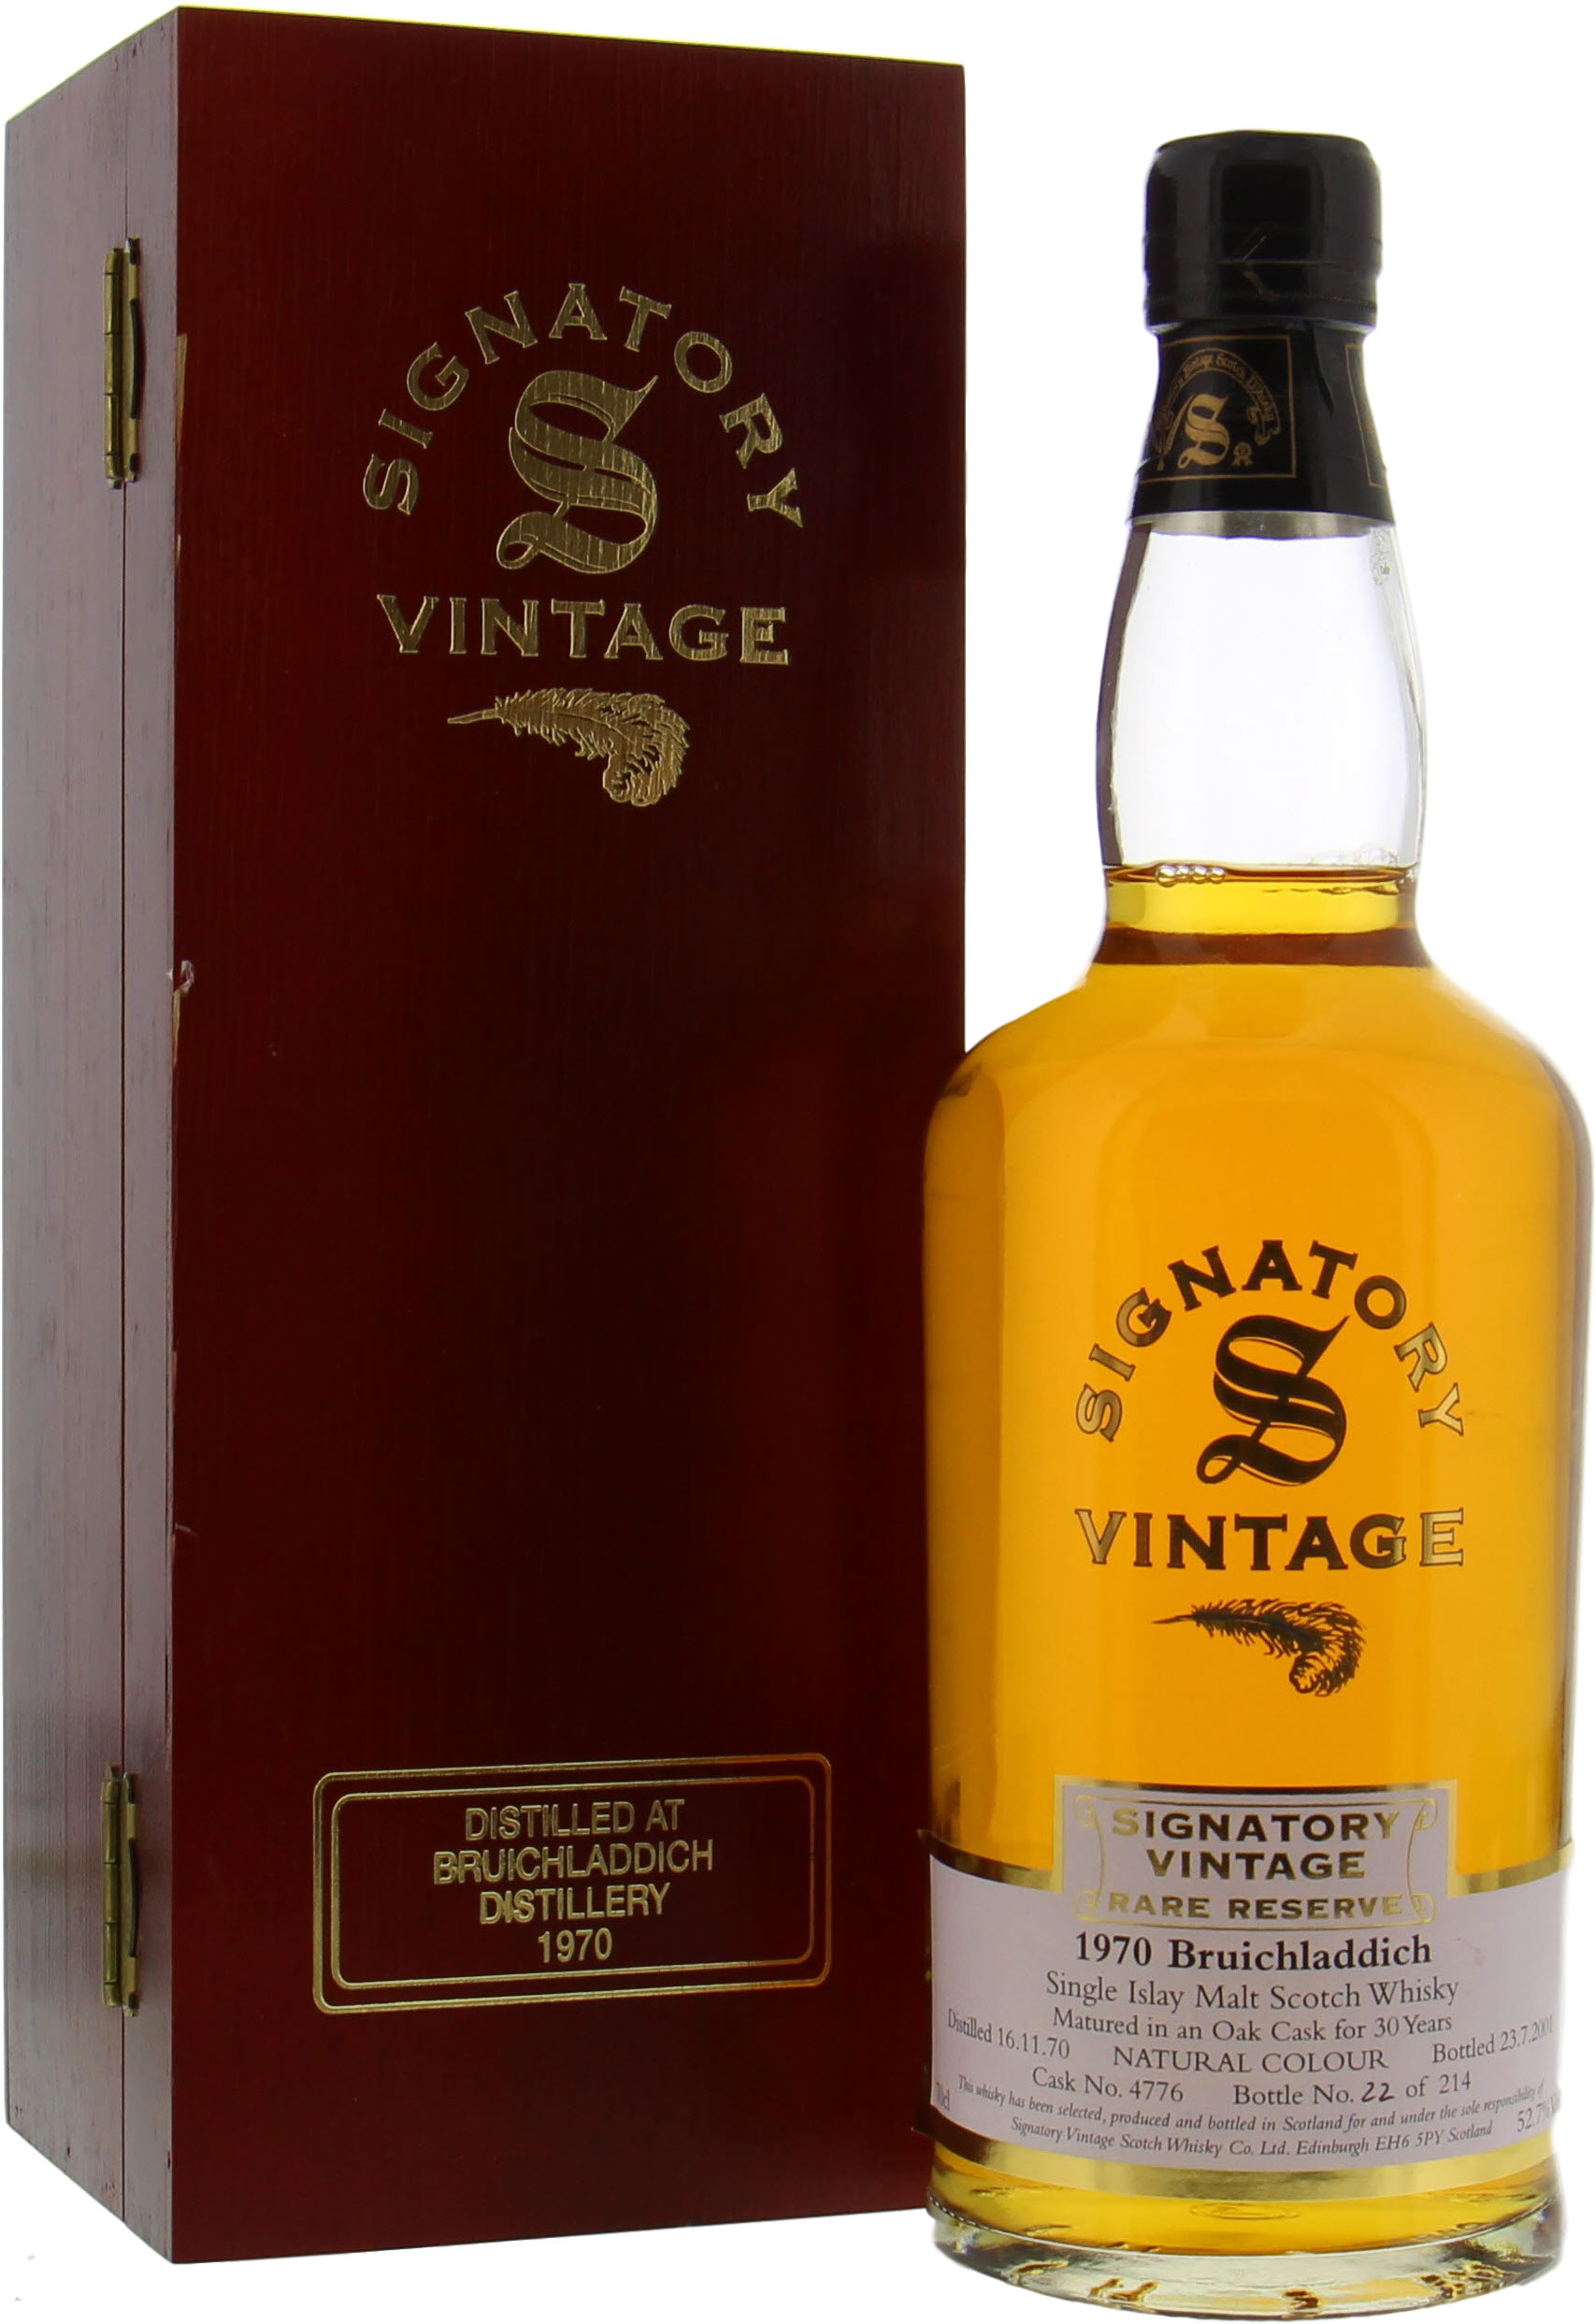 Bruichladdich  - 30 Years Old Signatory Vintage Rare Reserve Cask 4776 52.7% 1970